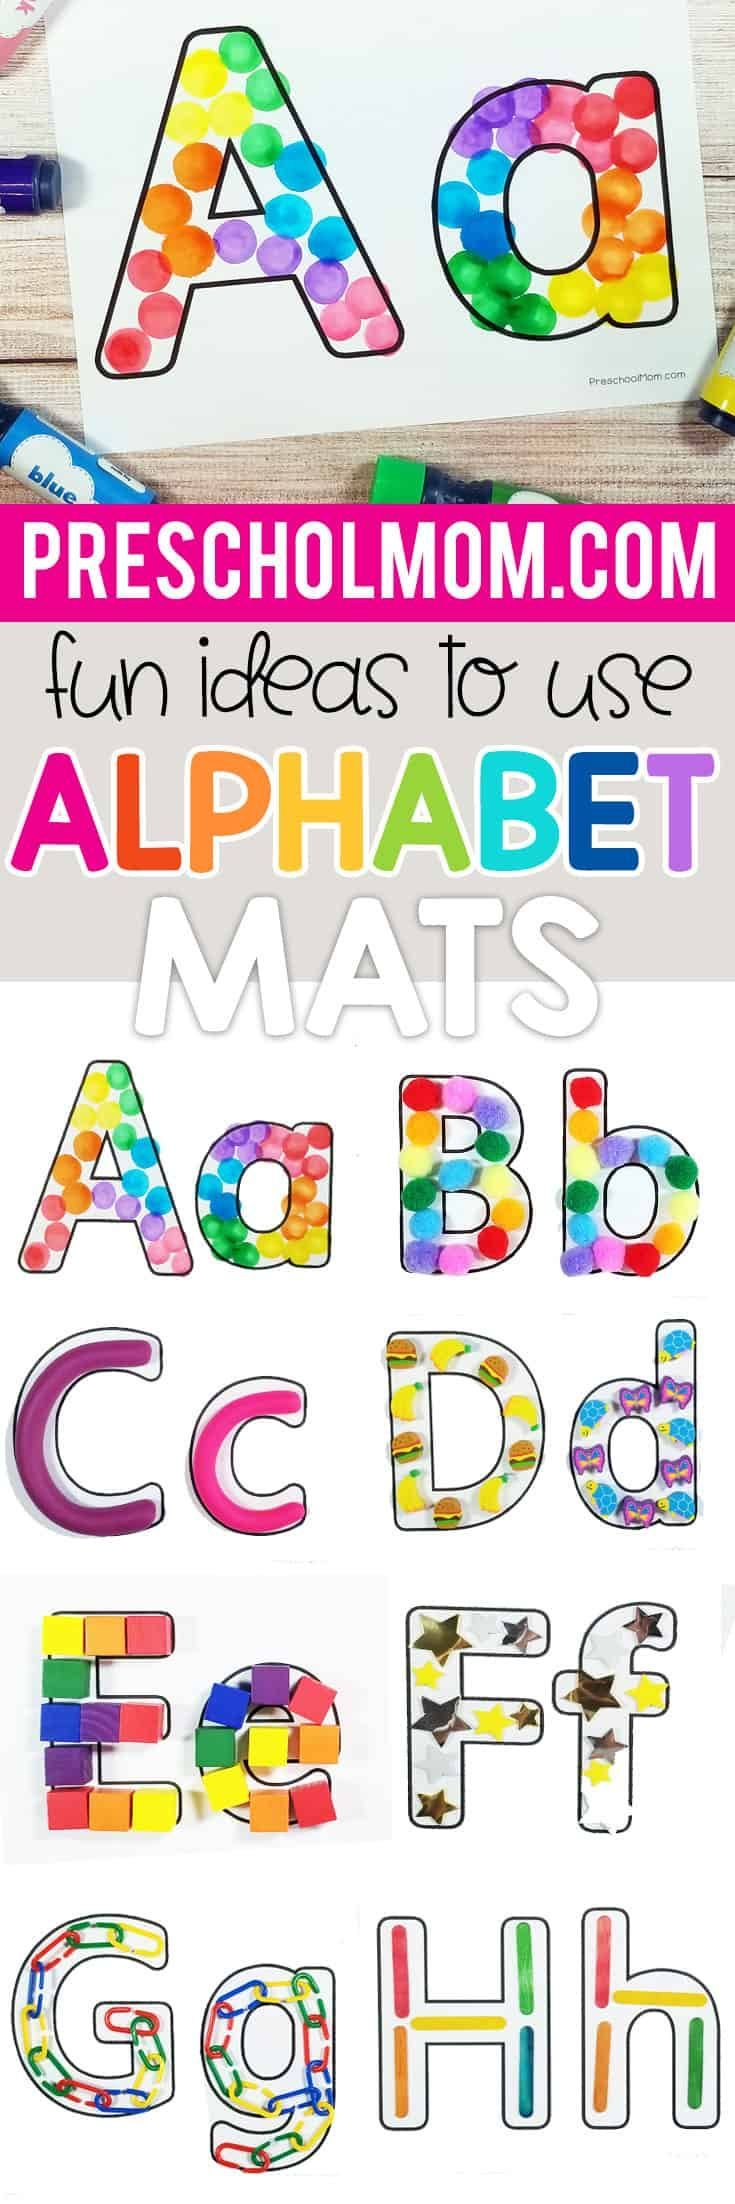 Free Blank Letter Mats - Alphabet activities preschool, Alphabet preschool, Early learning activities, Lettering alphabet, Lettering, Letter activities - These free blank alphabet letter mats make look simple, but they are filled with possibility for your preschool classroom! Blank ABC letters can be filled with a variety of different small items